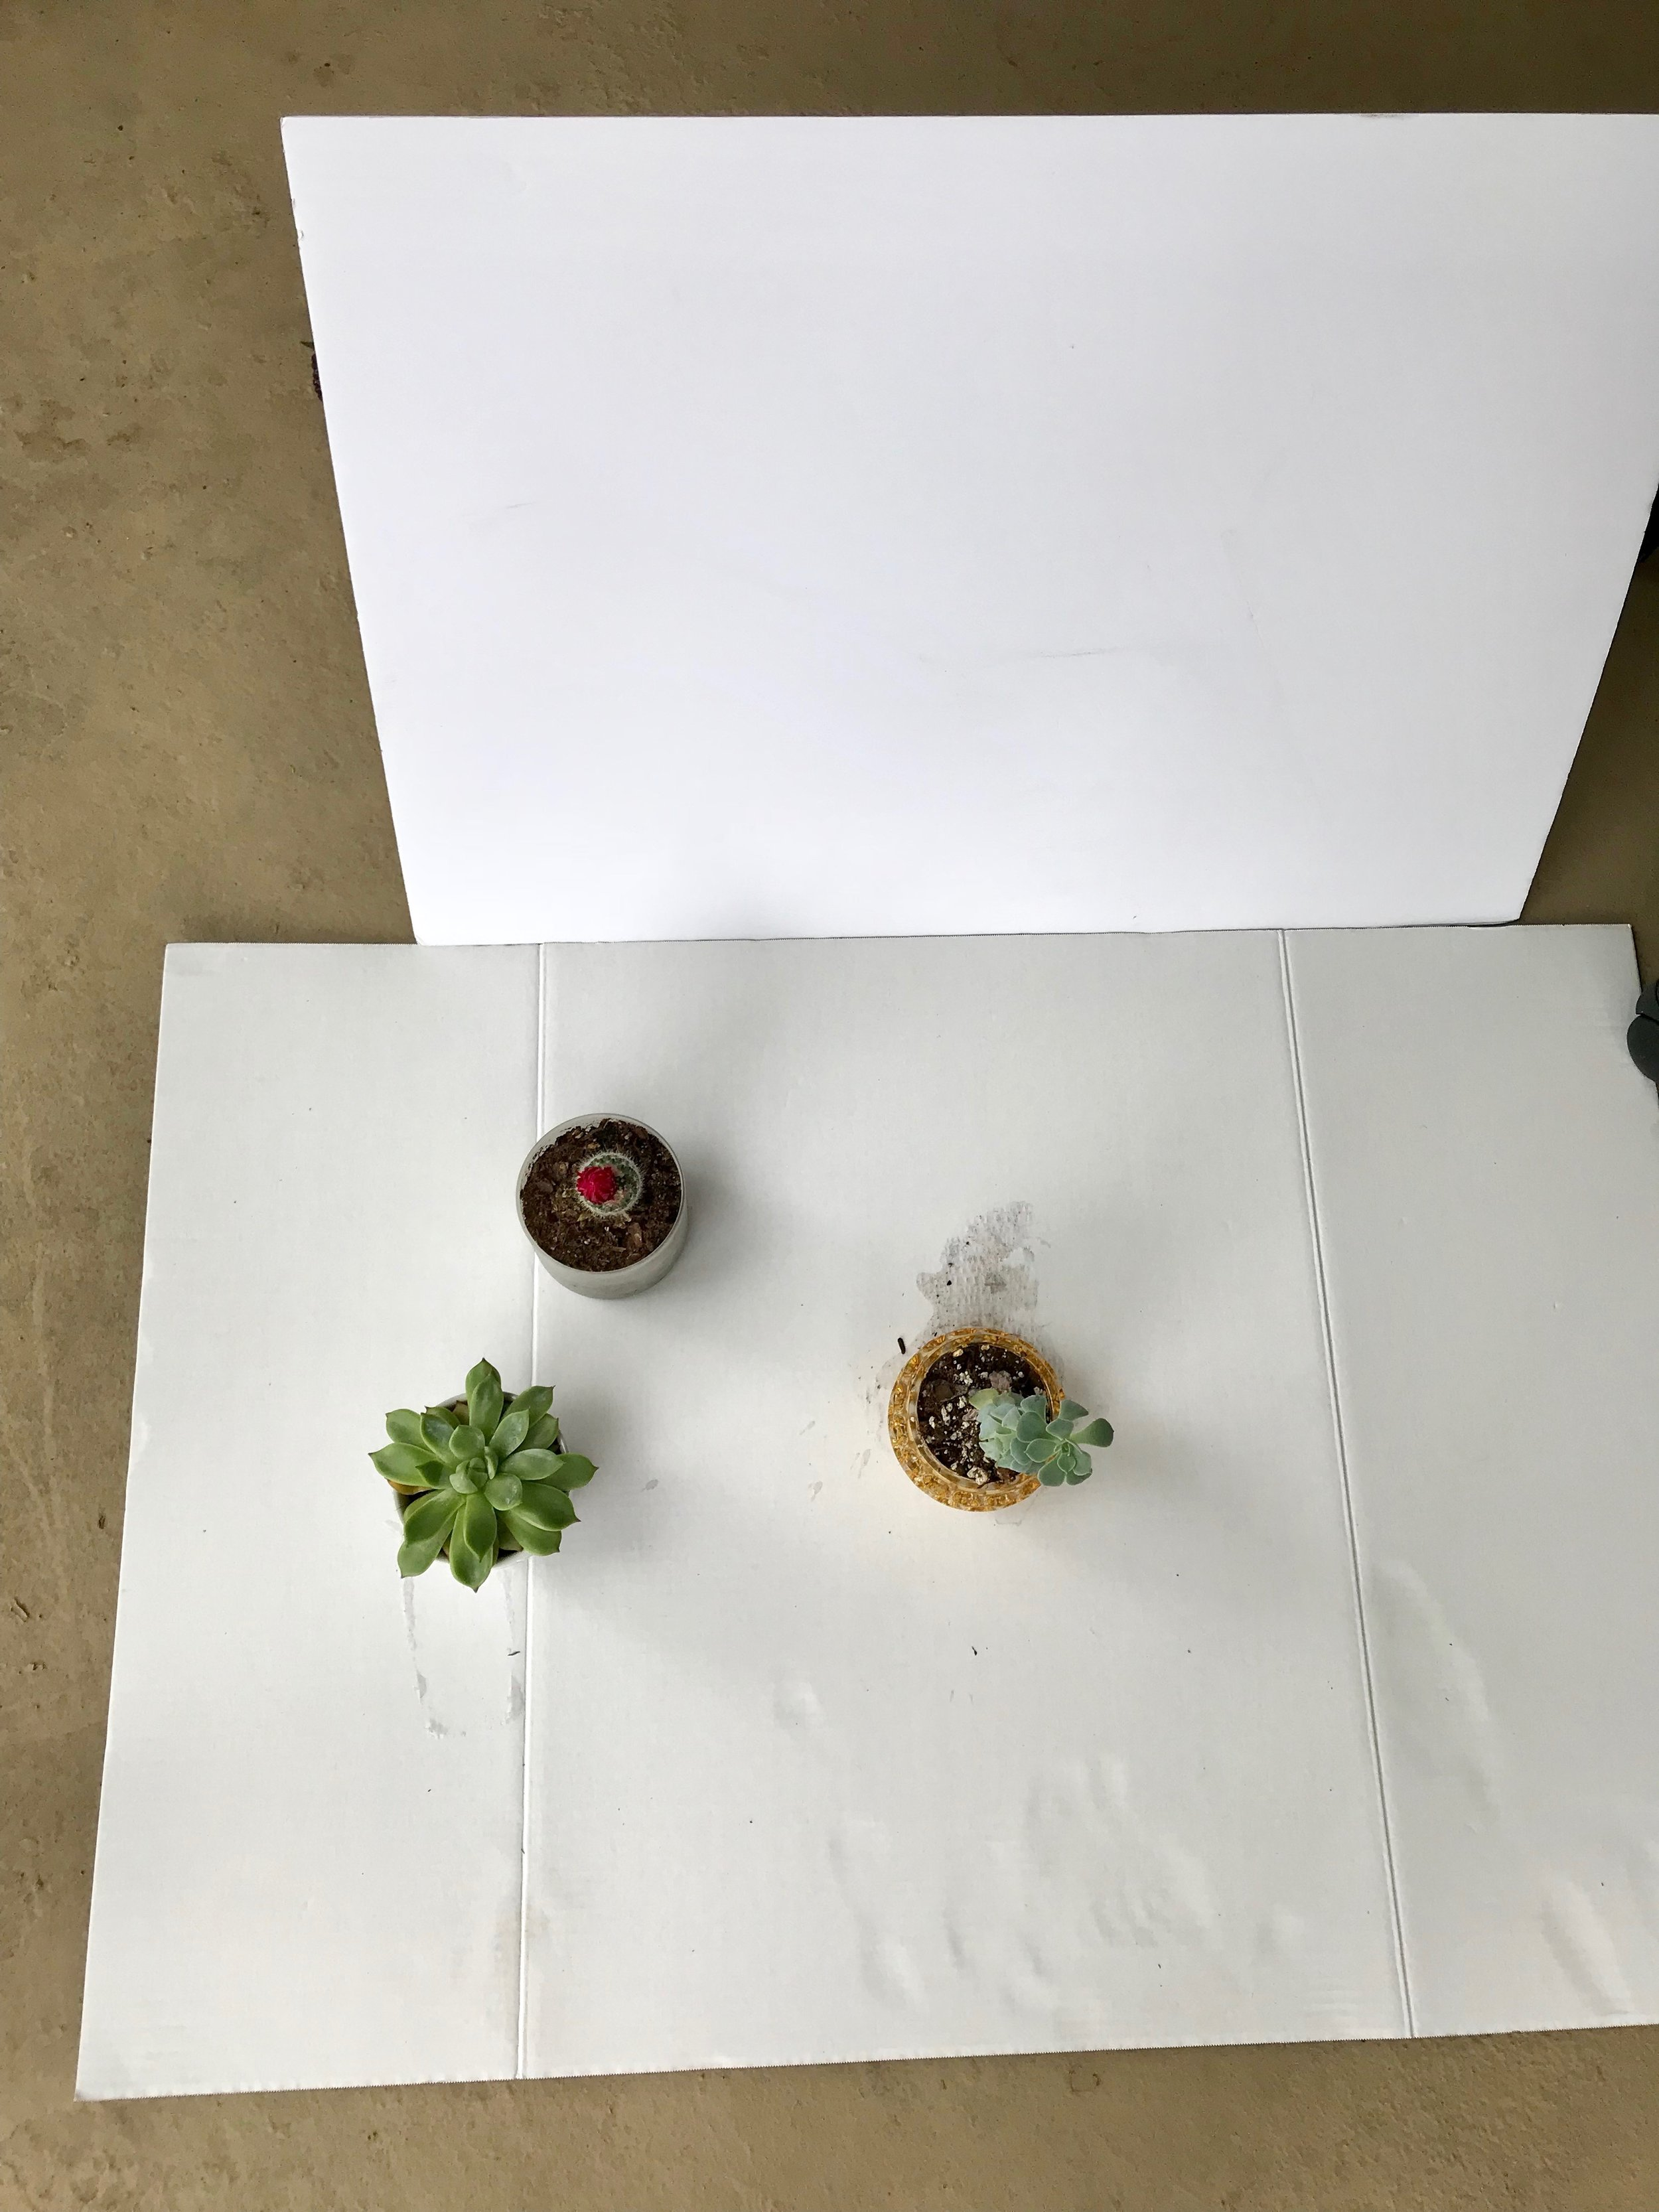 This was my setup. I was out on the balcony, and I used two white cardboards, using the top one to bounce off the light that was coming in. I reposition myself for all the shots, so that I didn't have to move the cardboards. Sorry for the dirty cardboard!